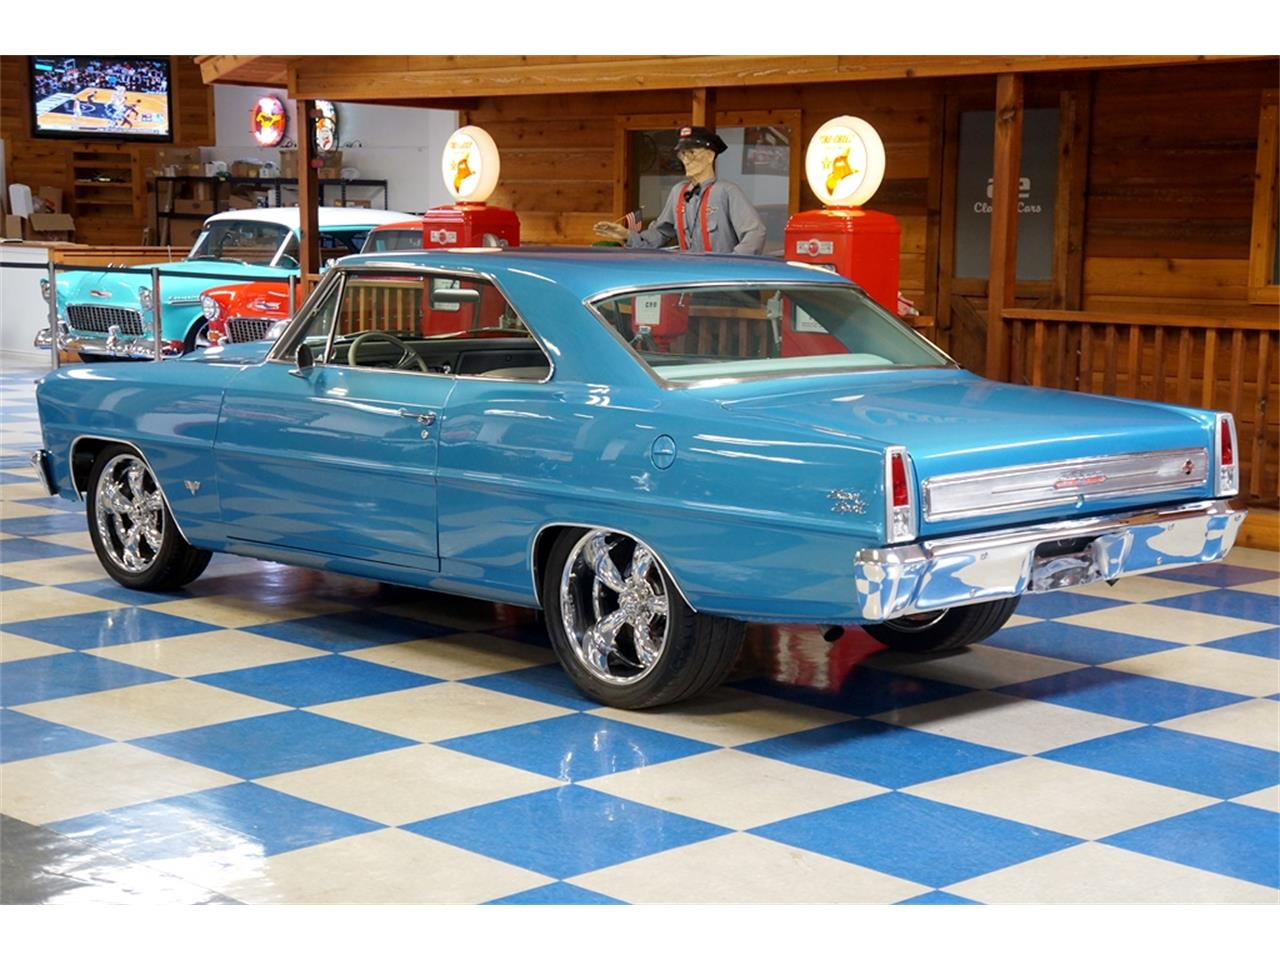 Large Picture of Classic 1966 Chevrolet Nova located in New Braunfels Texas - $64,900.00 - PWOL